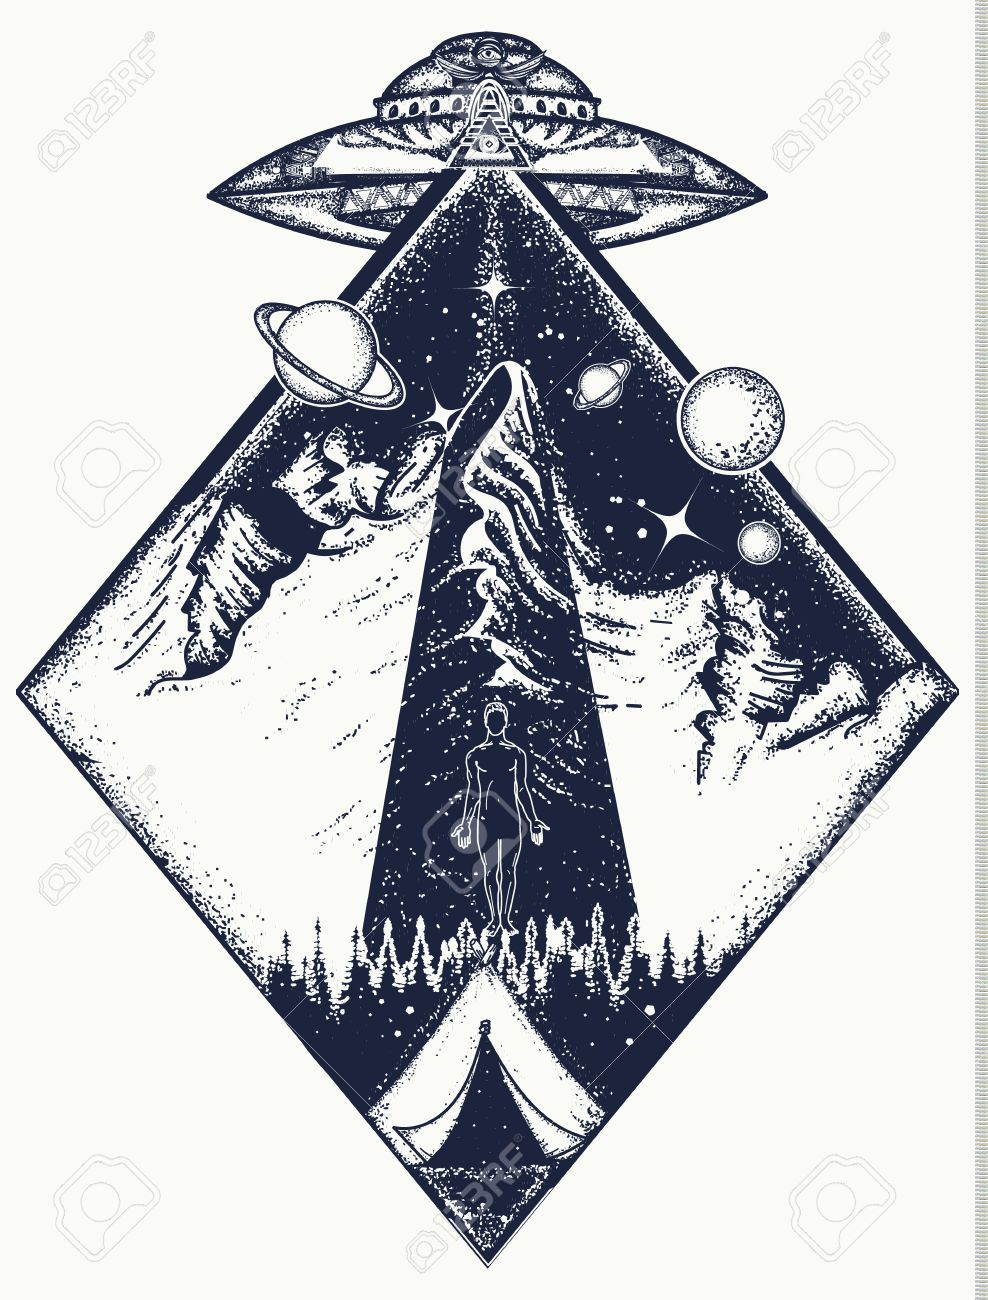 UFO tattoo art and t-shirt design. Invasion of aliens. Aliens kidnap human. Mystical symbol paranormal phenomena, first contact, UFO kidnapped tourist from tent in mountains tattoo - 78600935